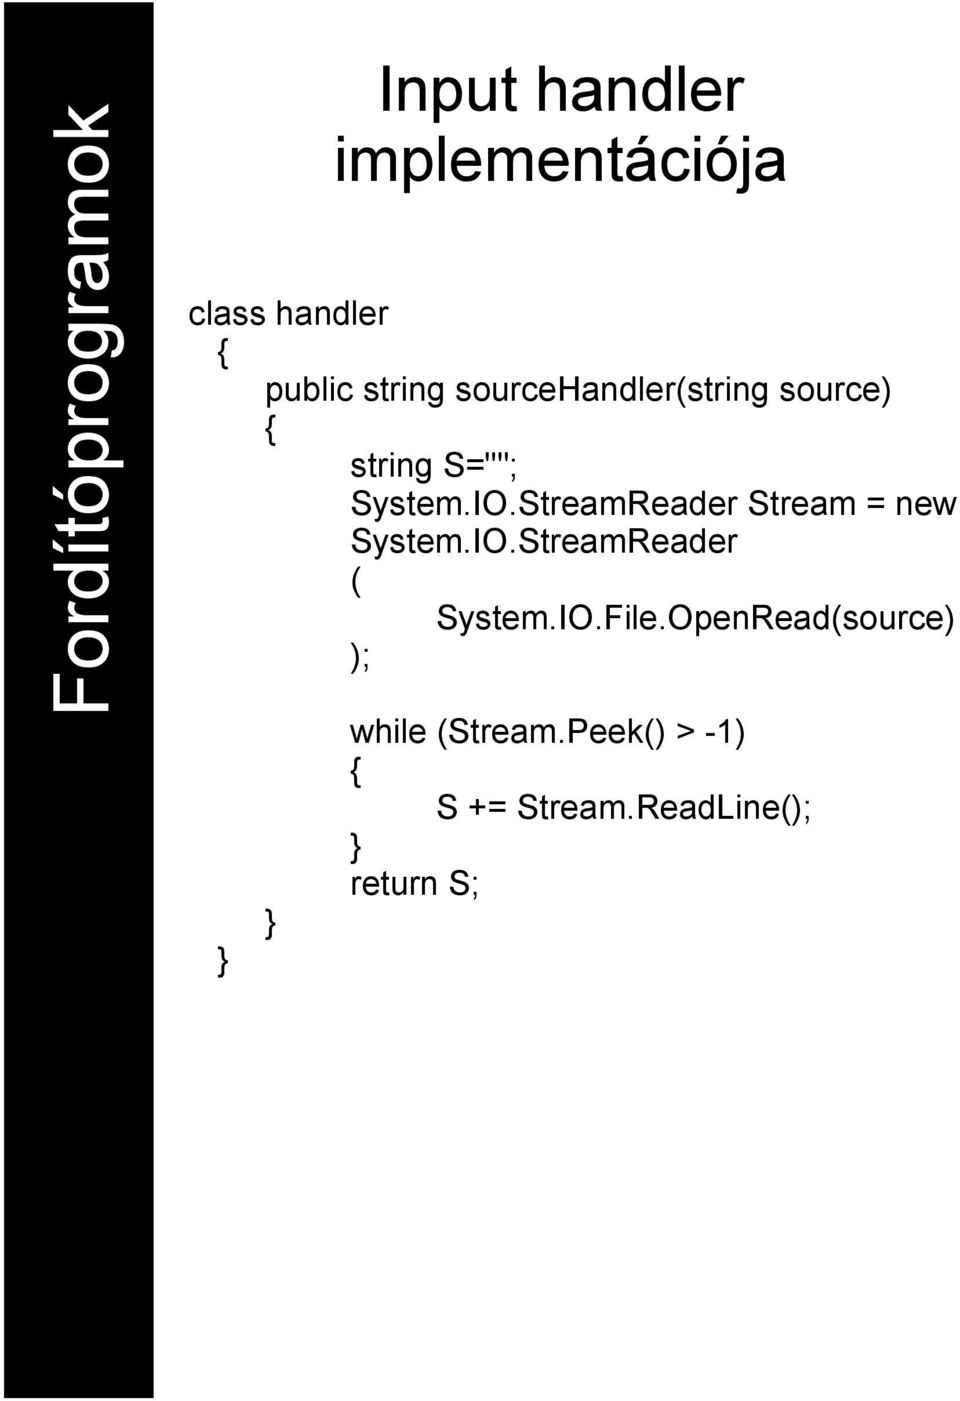 StreamReader Stream = new System.IO.StreamReader ( System.IO.File.